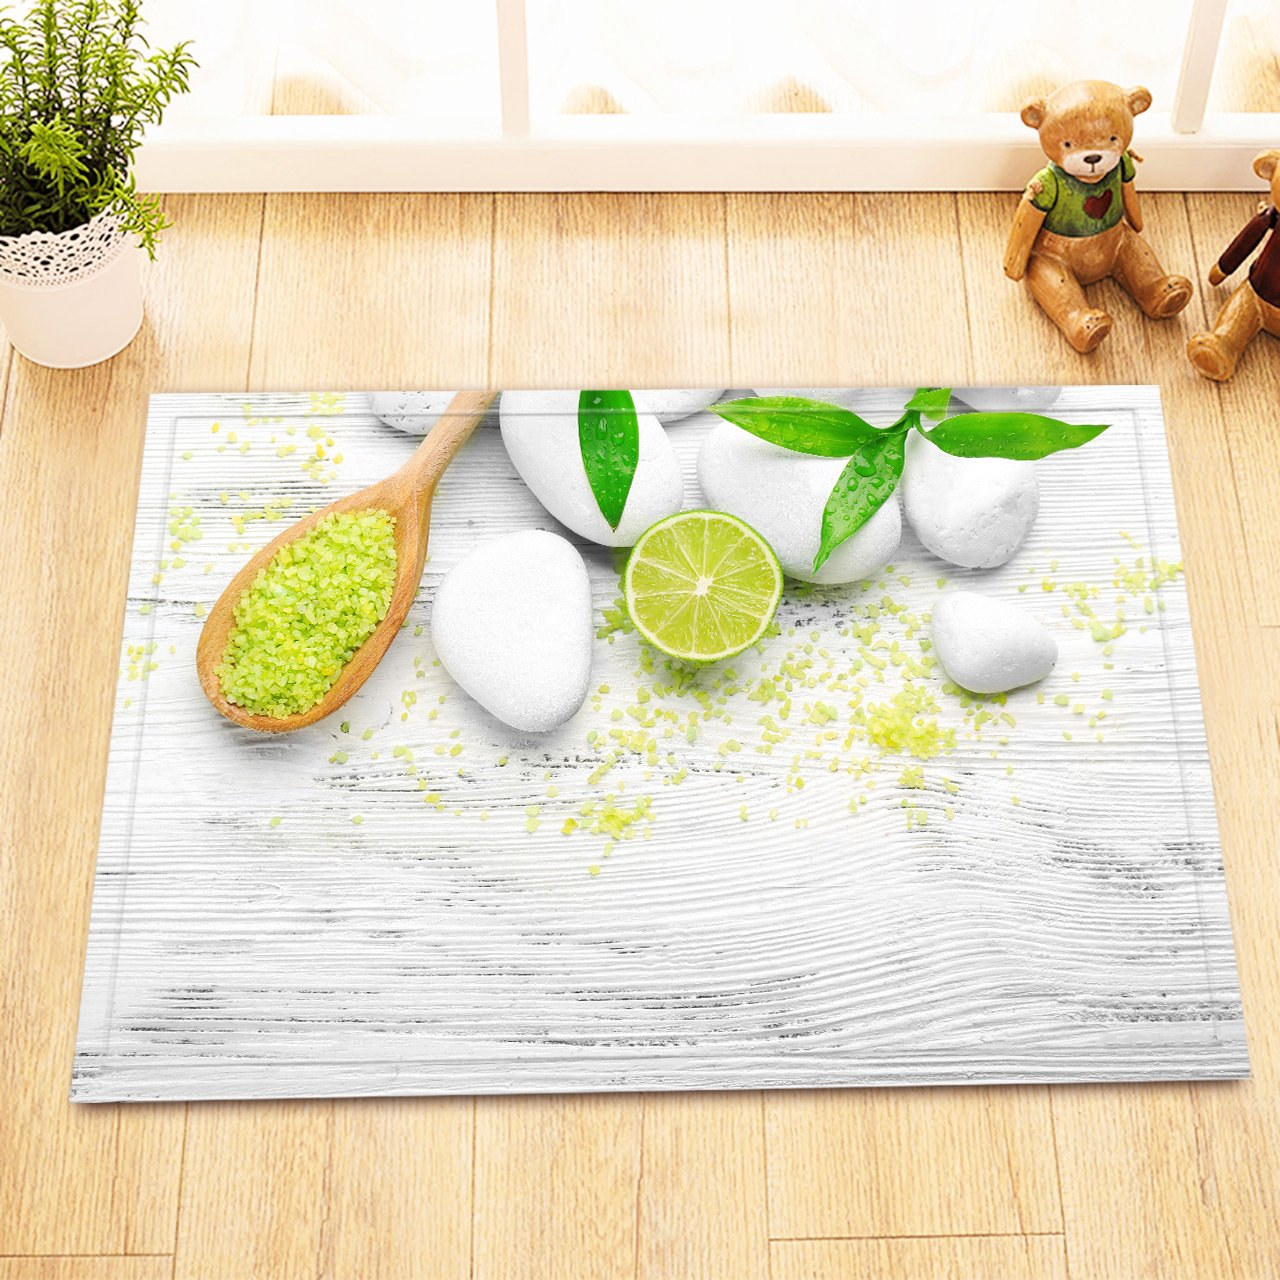 LB Massage Stones Lemon Bamboo Salt Rustic White Wood Panel Indoor Rugs Small, Machine Washable Flannel Surface Non Slip Backing, Spa Scene House Decor 15 x 23 Inches